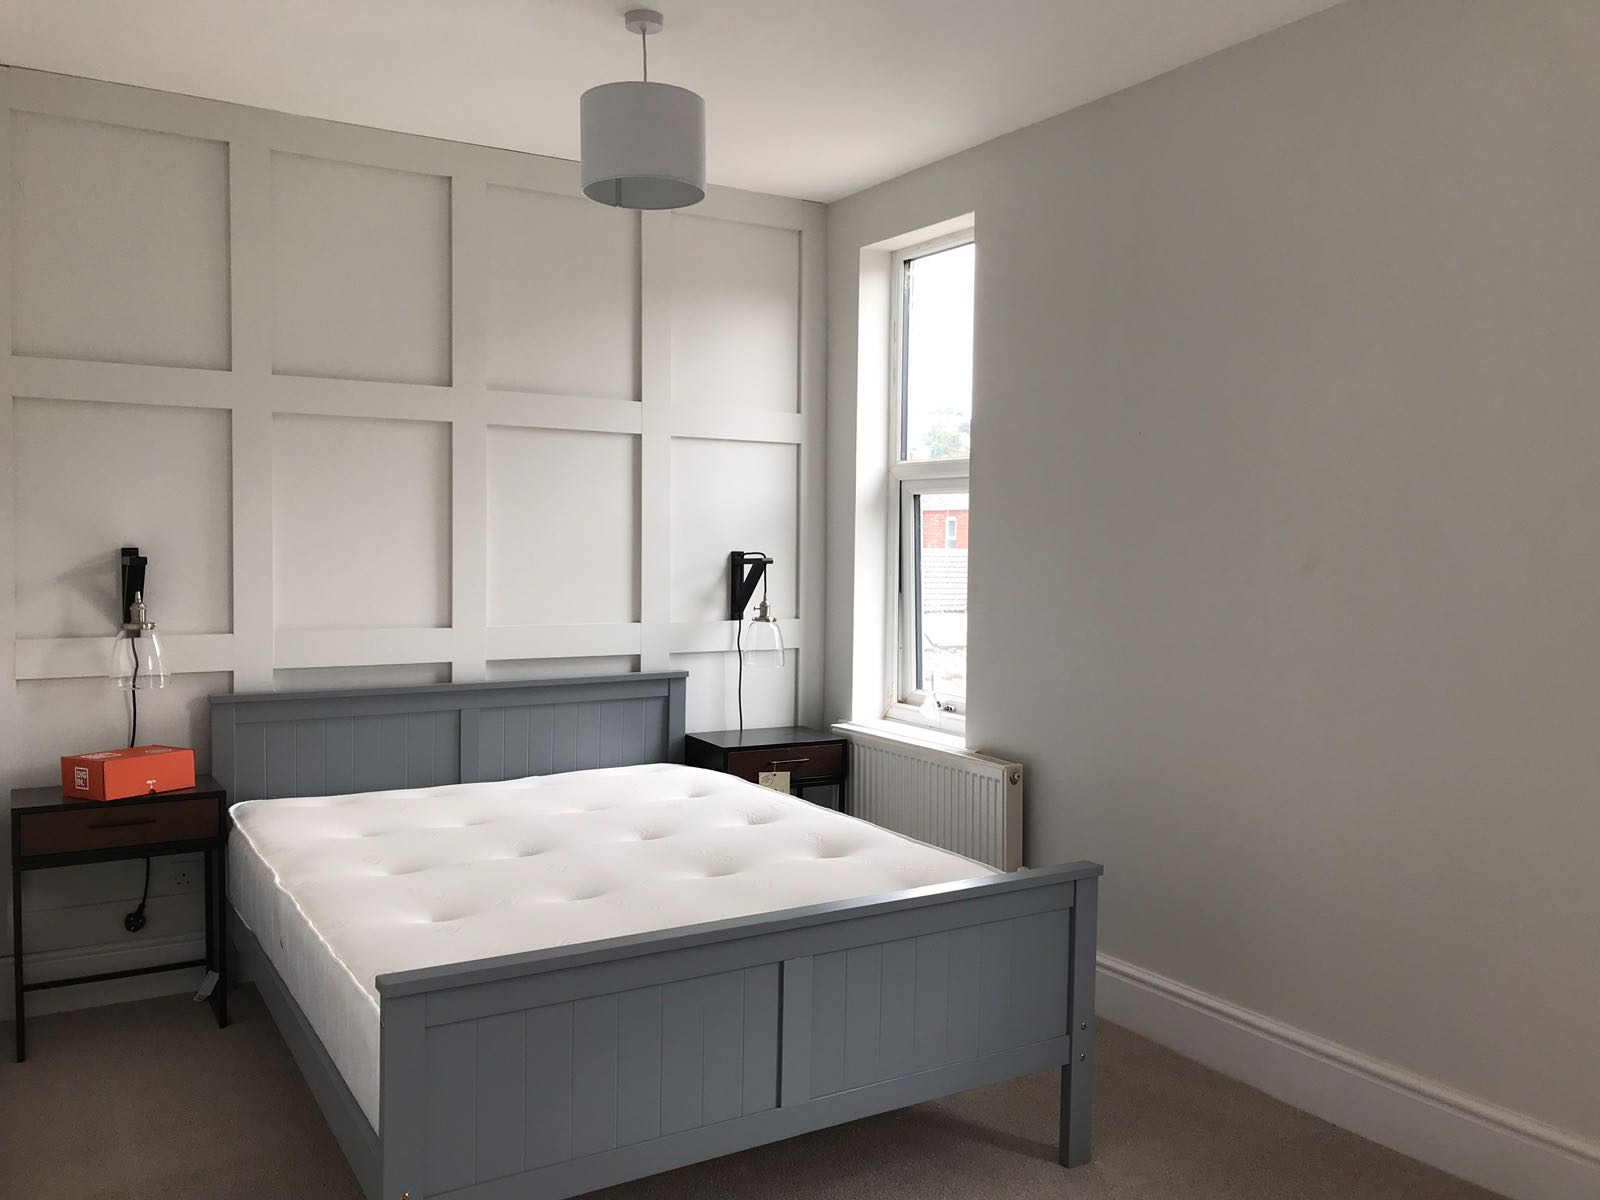 Westfield Street – 3 Bed [1 bed remaining]